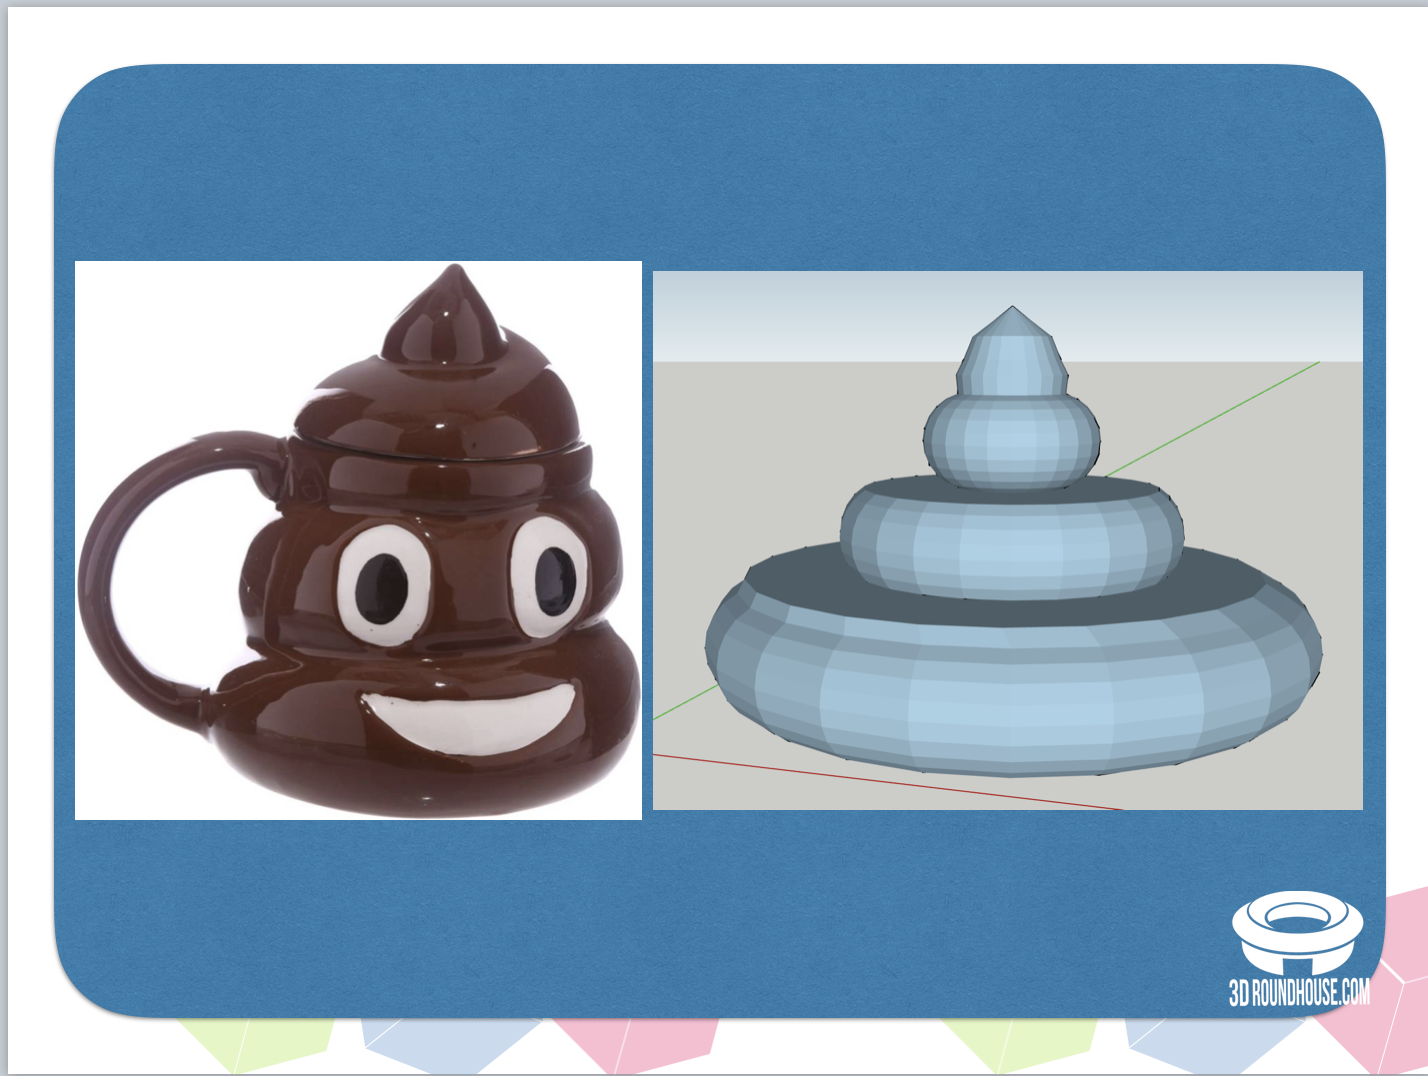 Inspired to recreate the poop emoji!